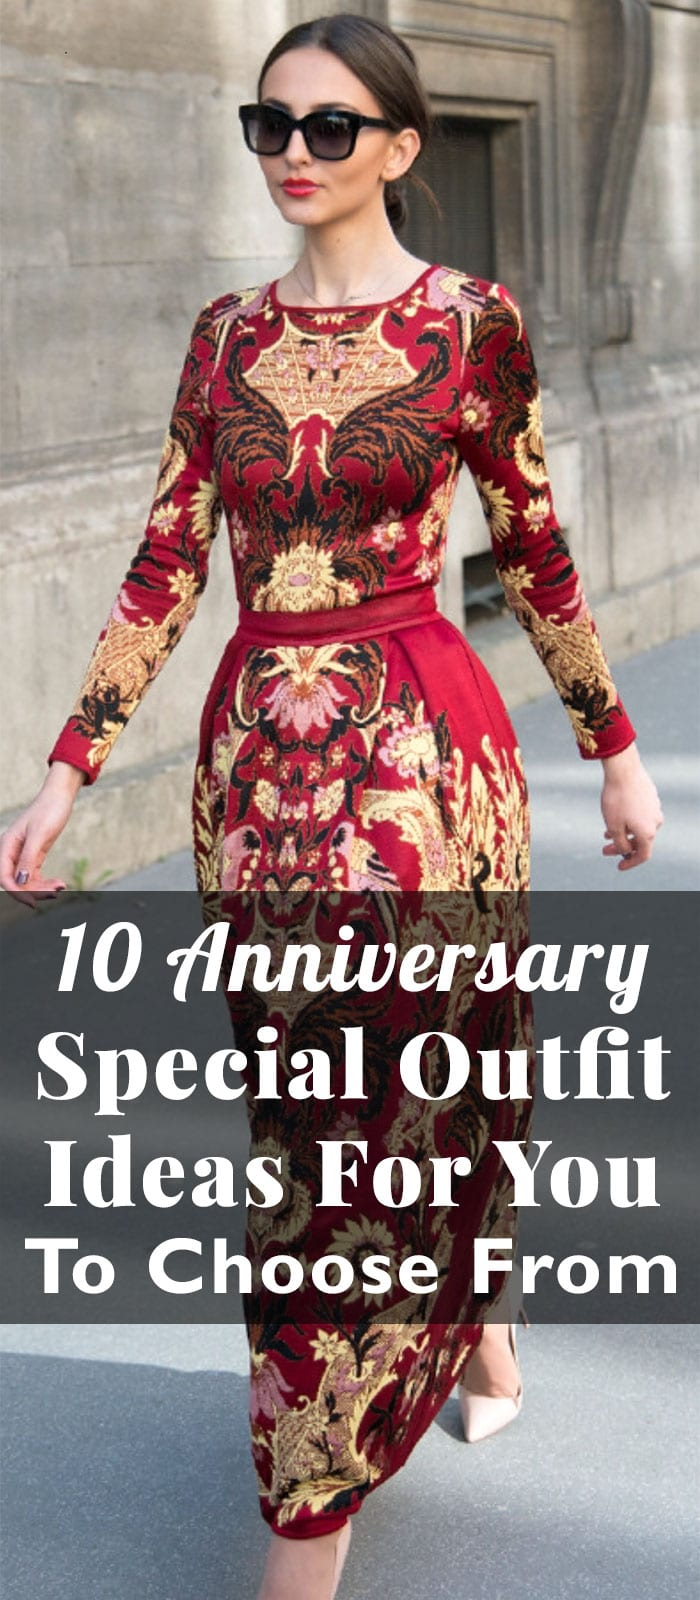 10 Anniversary Special Outfit Ideas For You To Choose From